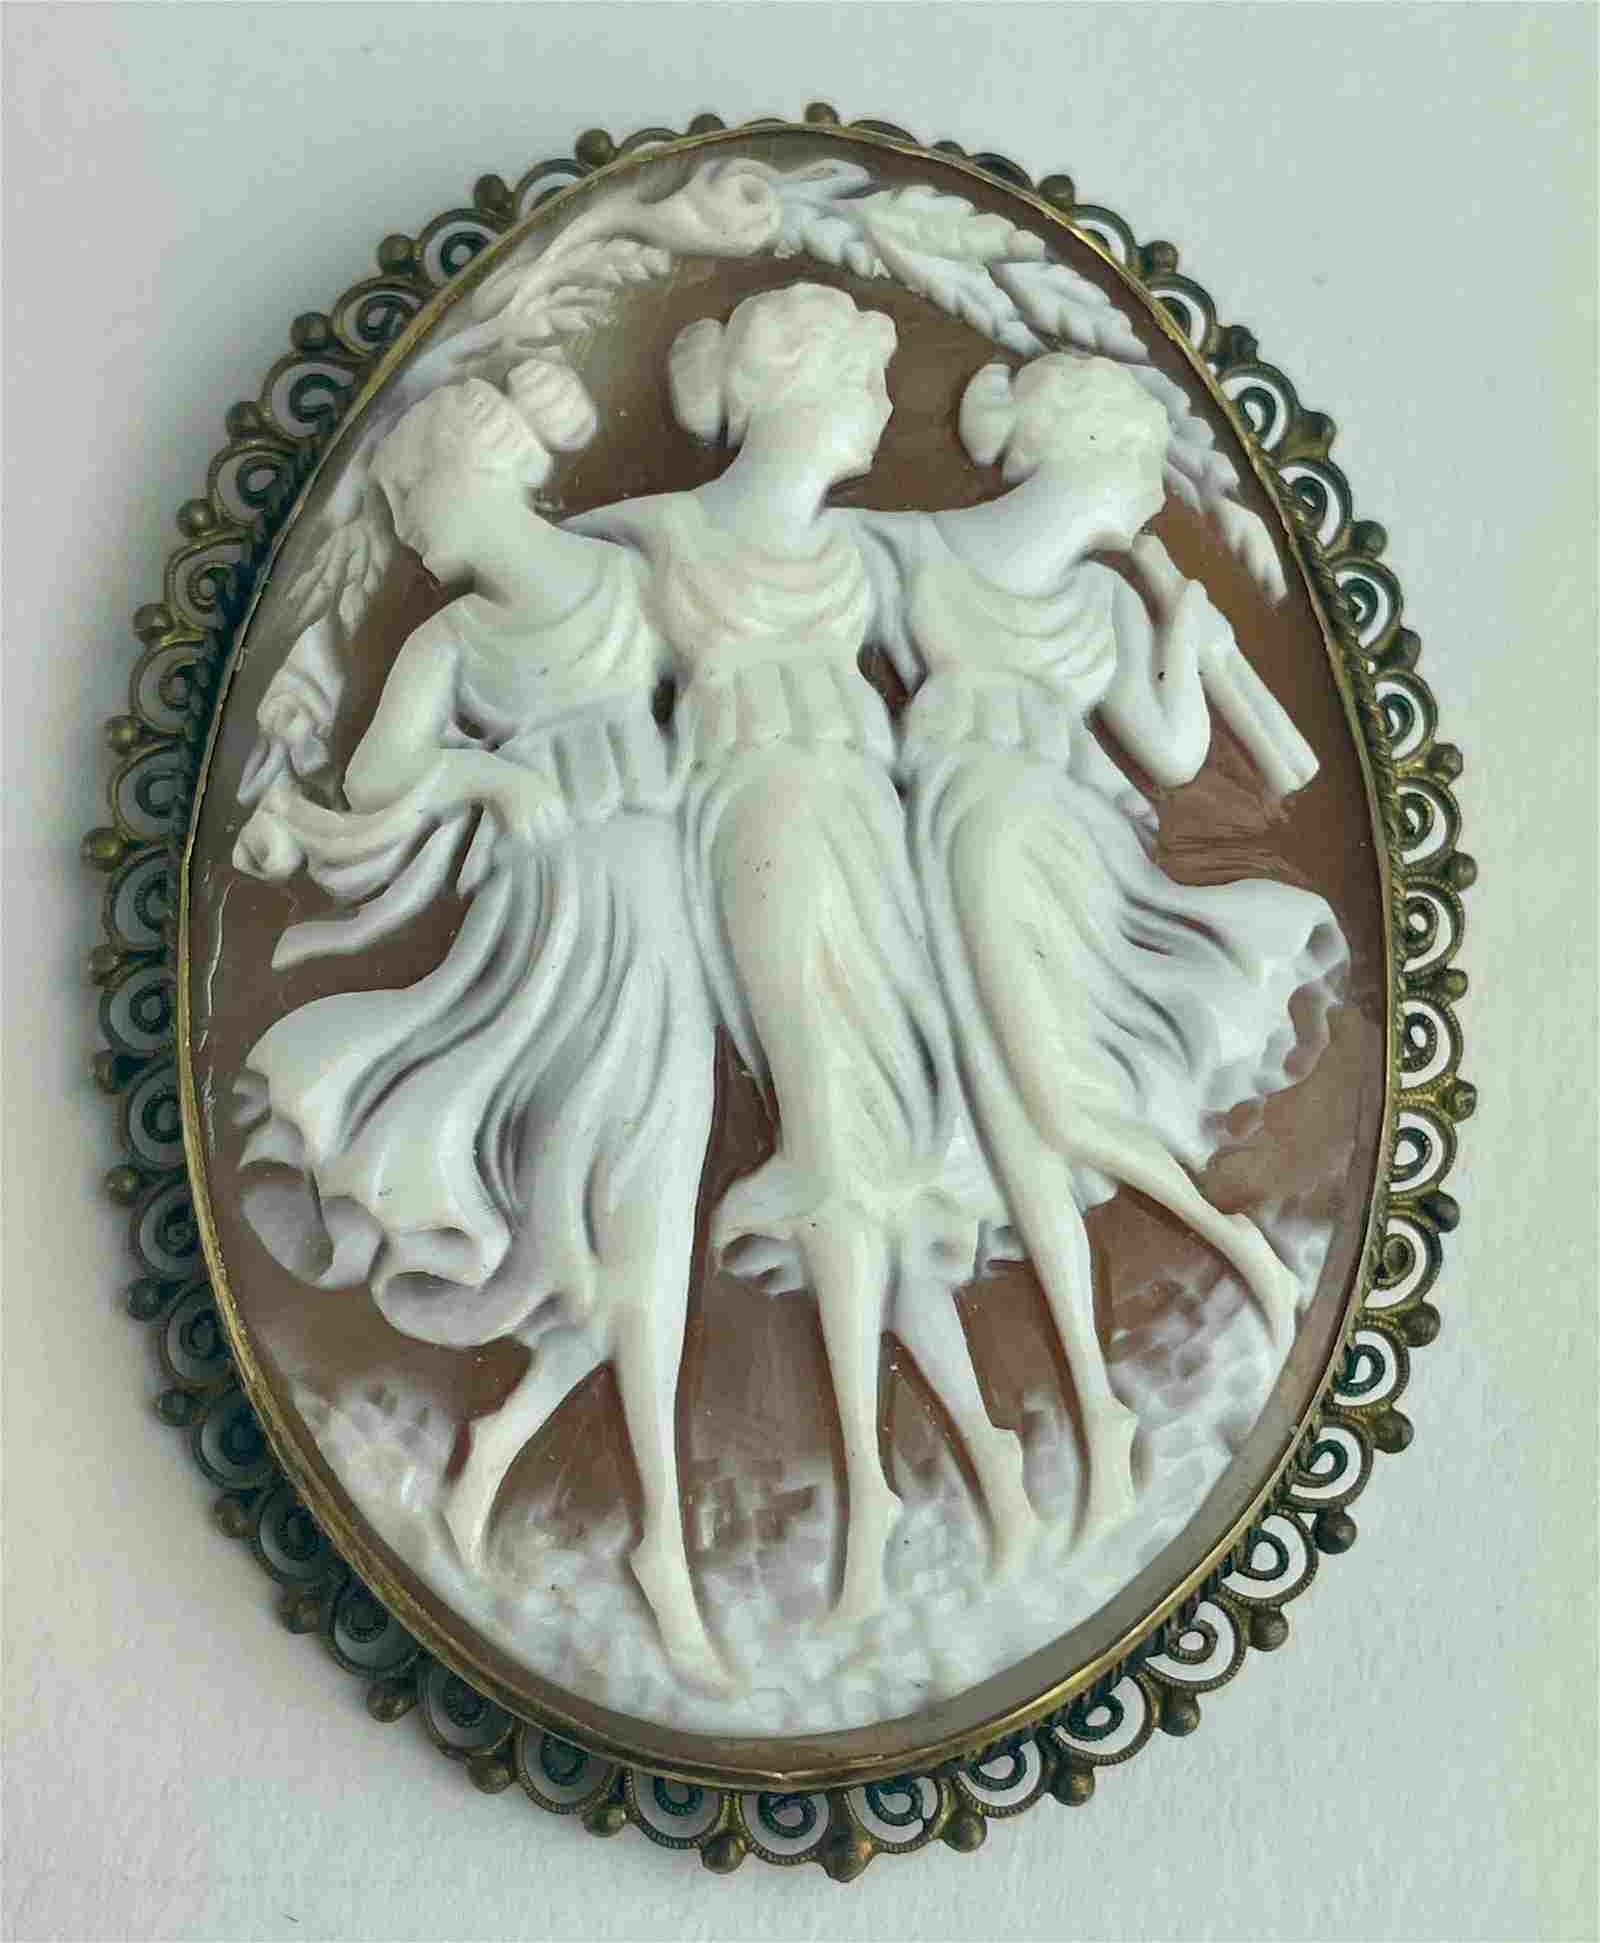 A Cameo Brooch Pin with the Three Graces